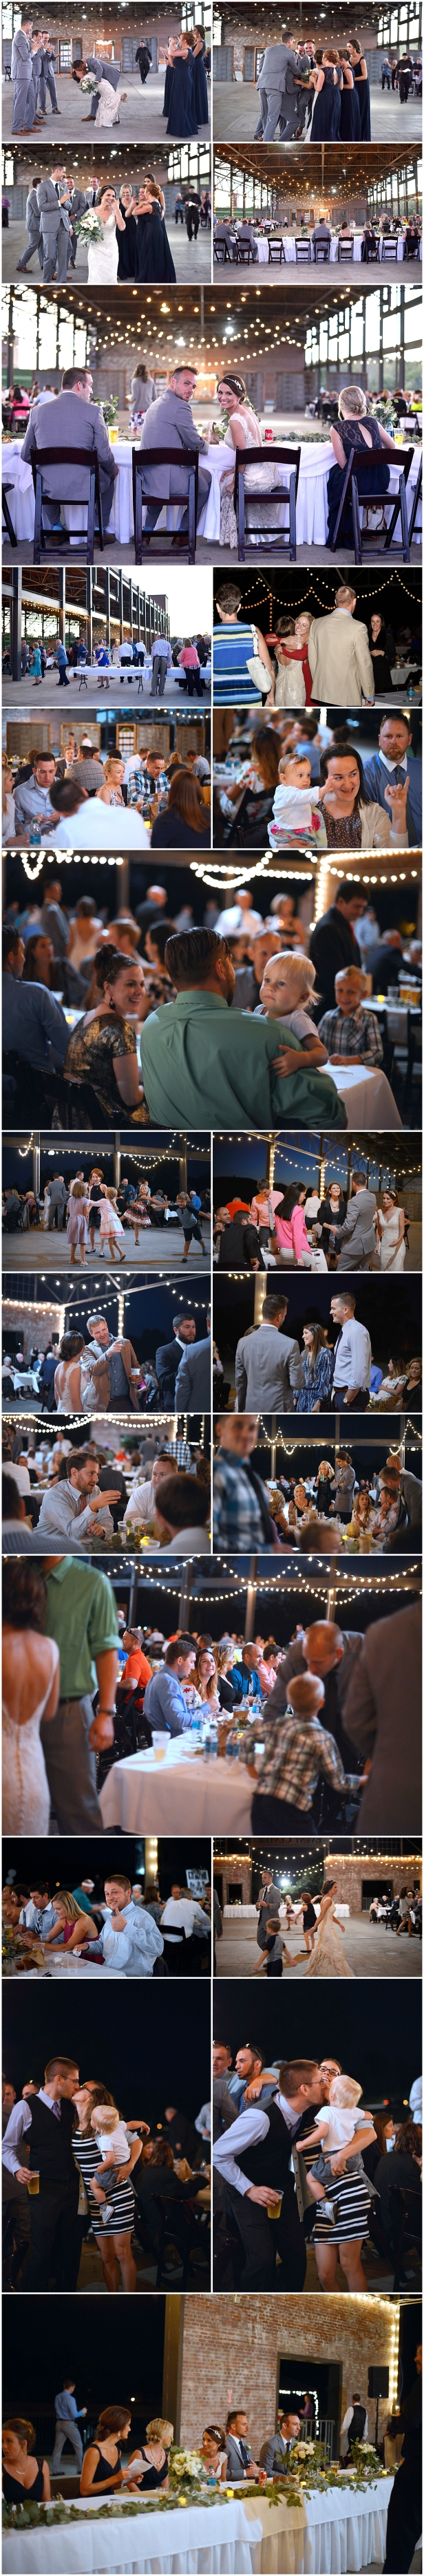 Ariel Foundation Park Wedding Reception